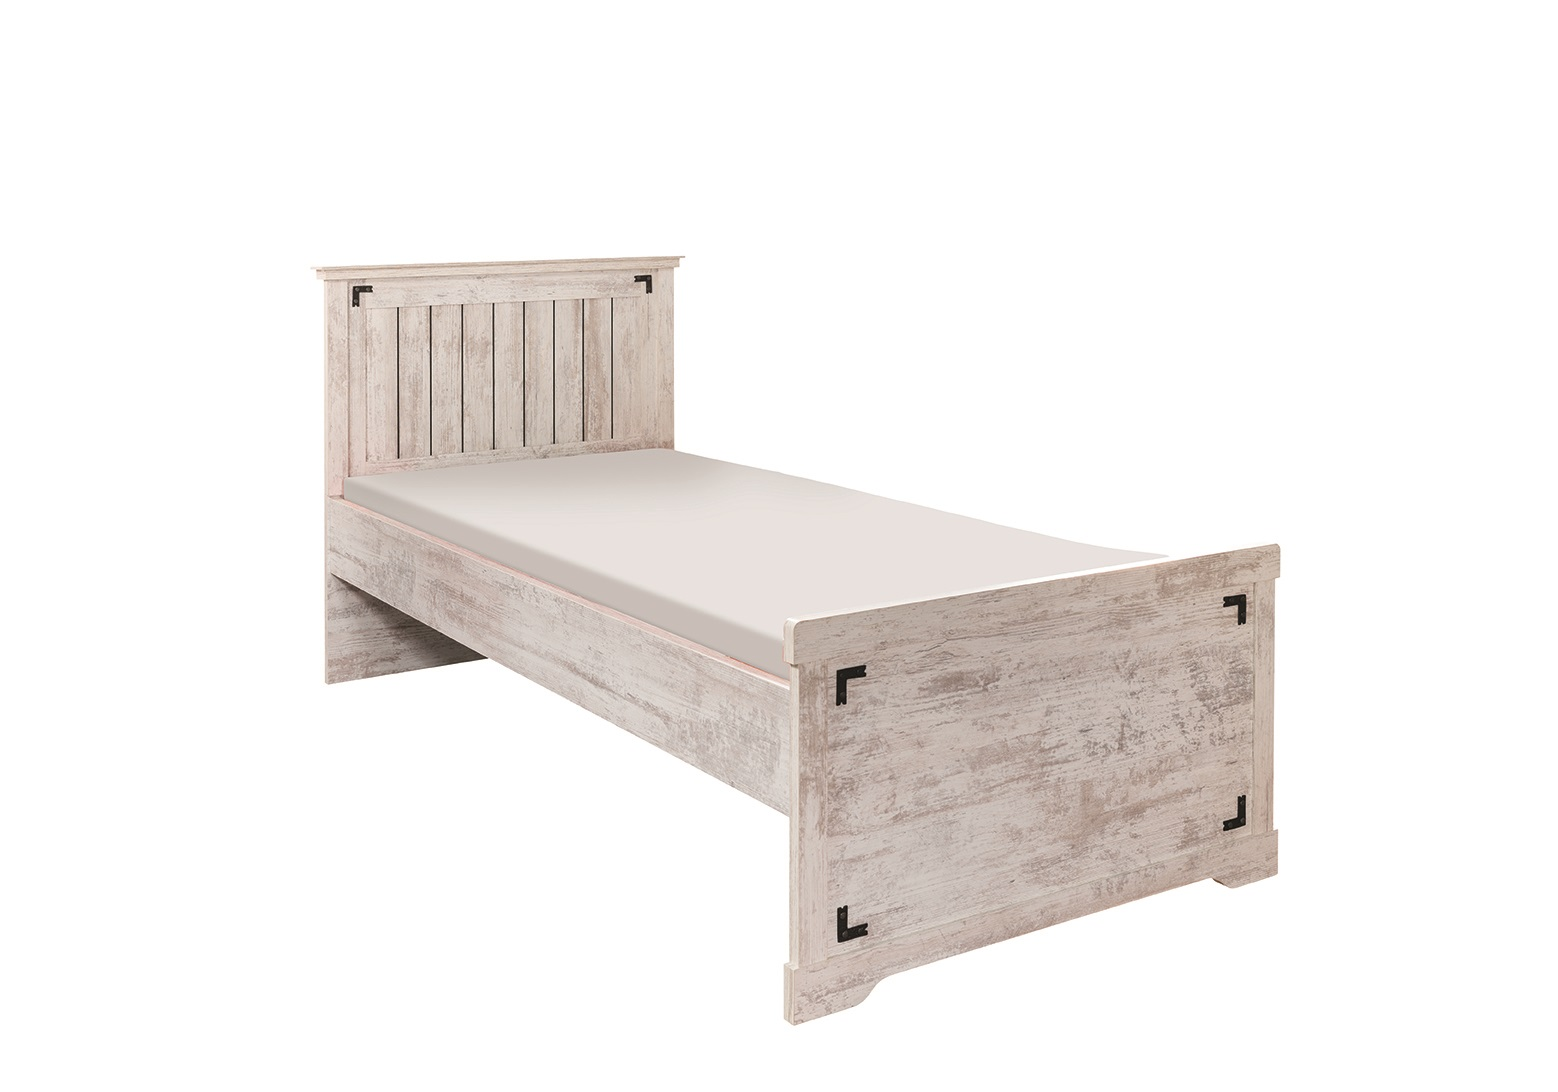 Bett 120x200 Cm Bett 120x200 Cm Woodlife In Weiss Im Landhausstil